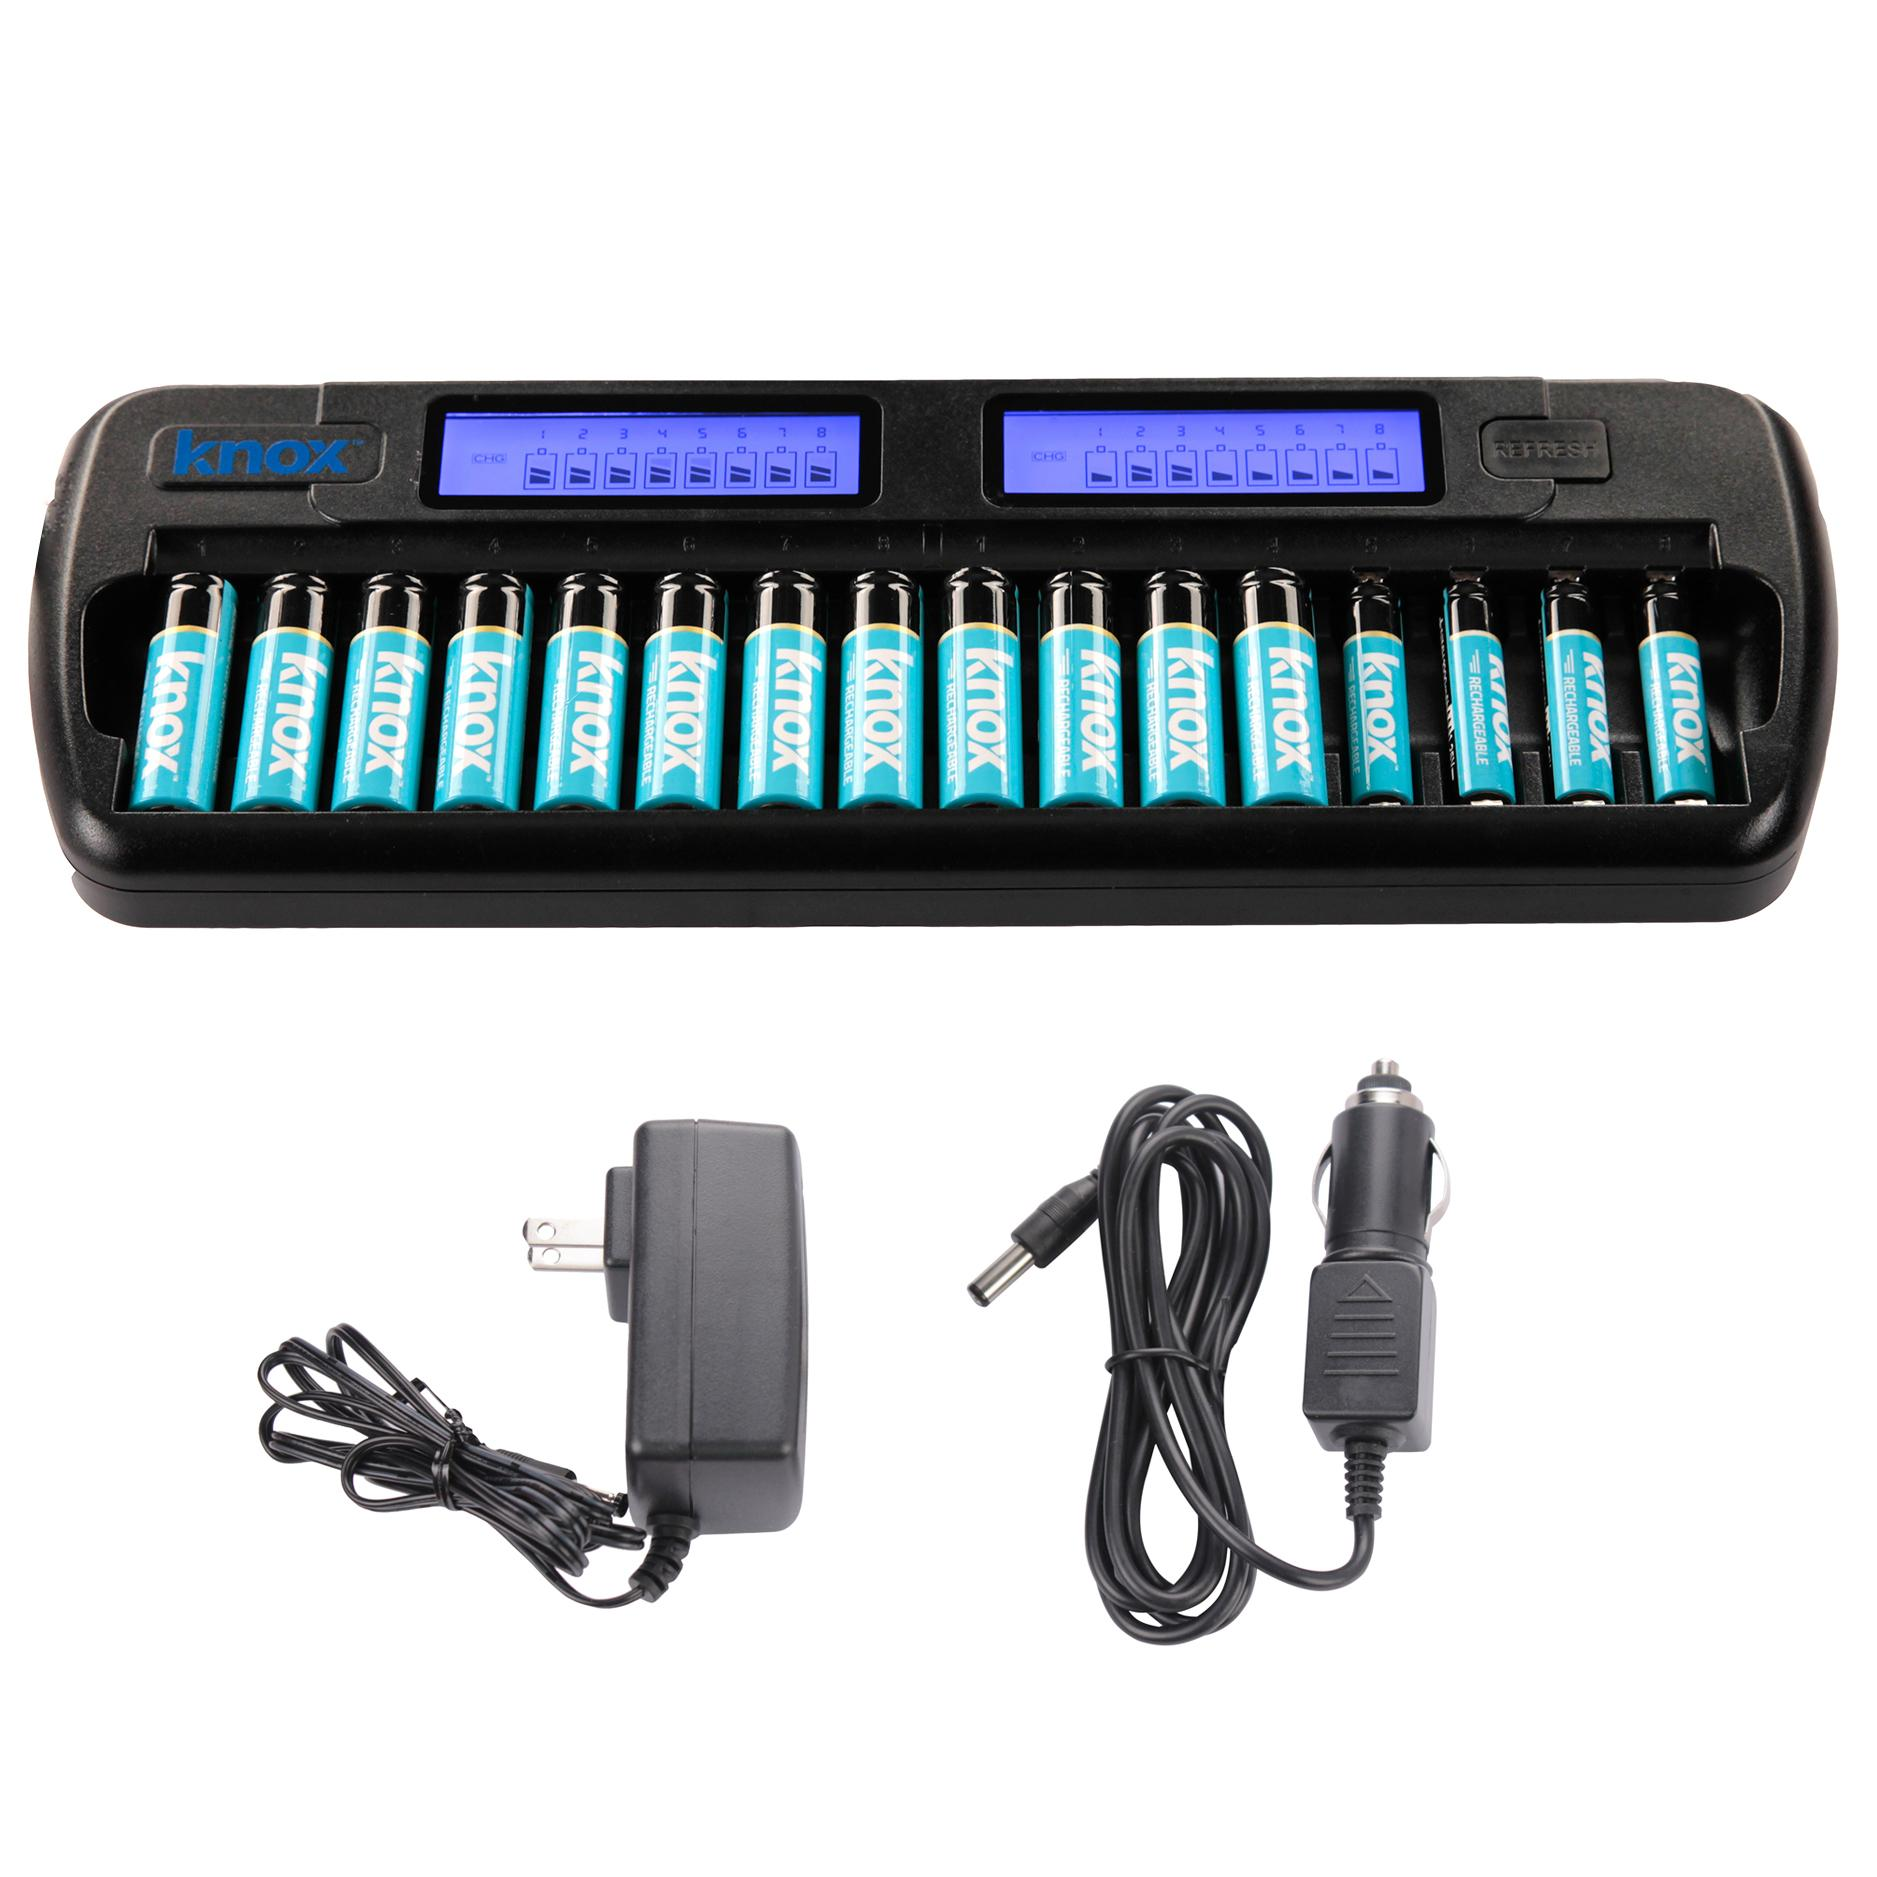 knox 16 bay rapid ni mh aa aaa battery charger with 12 aa 4 aaa batteries electronics. Black Bedroom Furniture Sets. Home Design Ideas